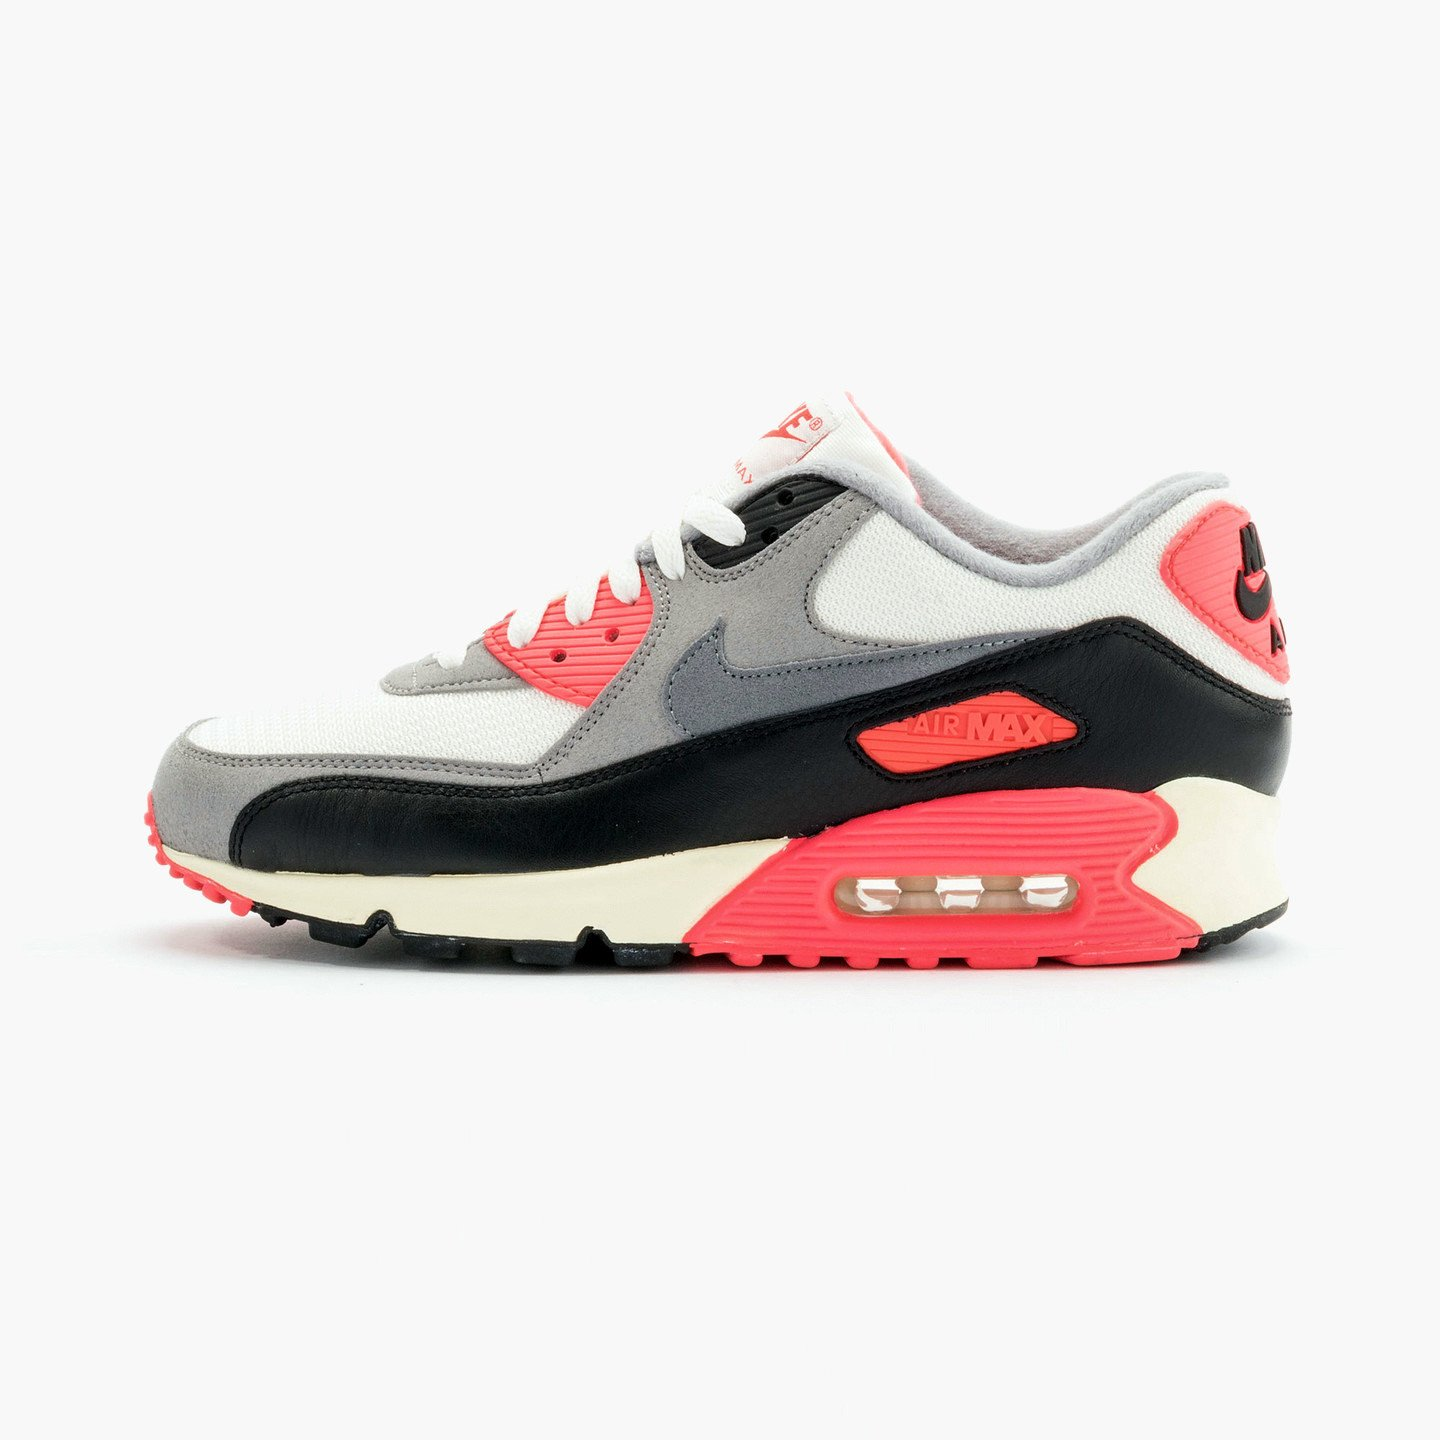 Nike Air Max 90 OG Vintage Infrared Sail/Cool Grey-Mdm Grey-Infrrd 543361-161-46